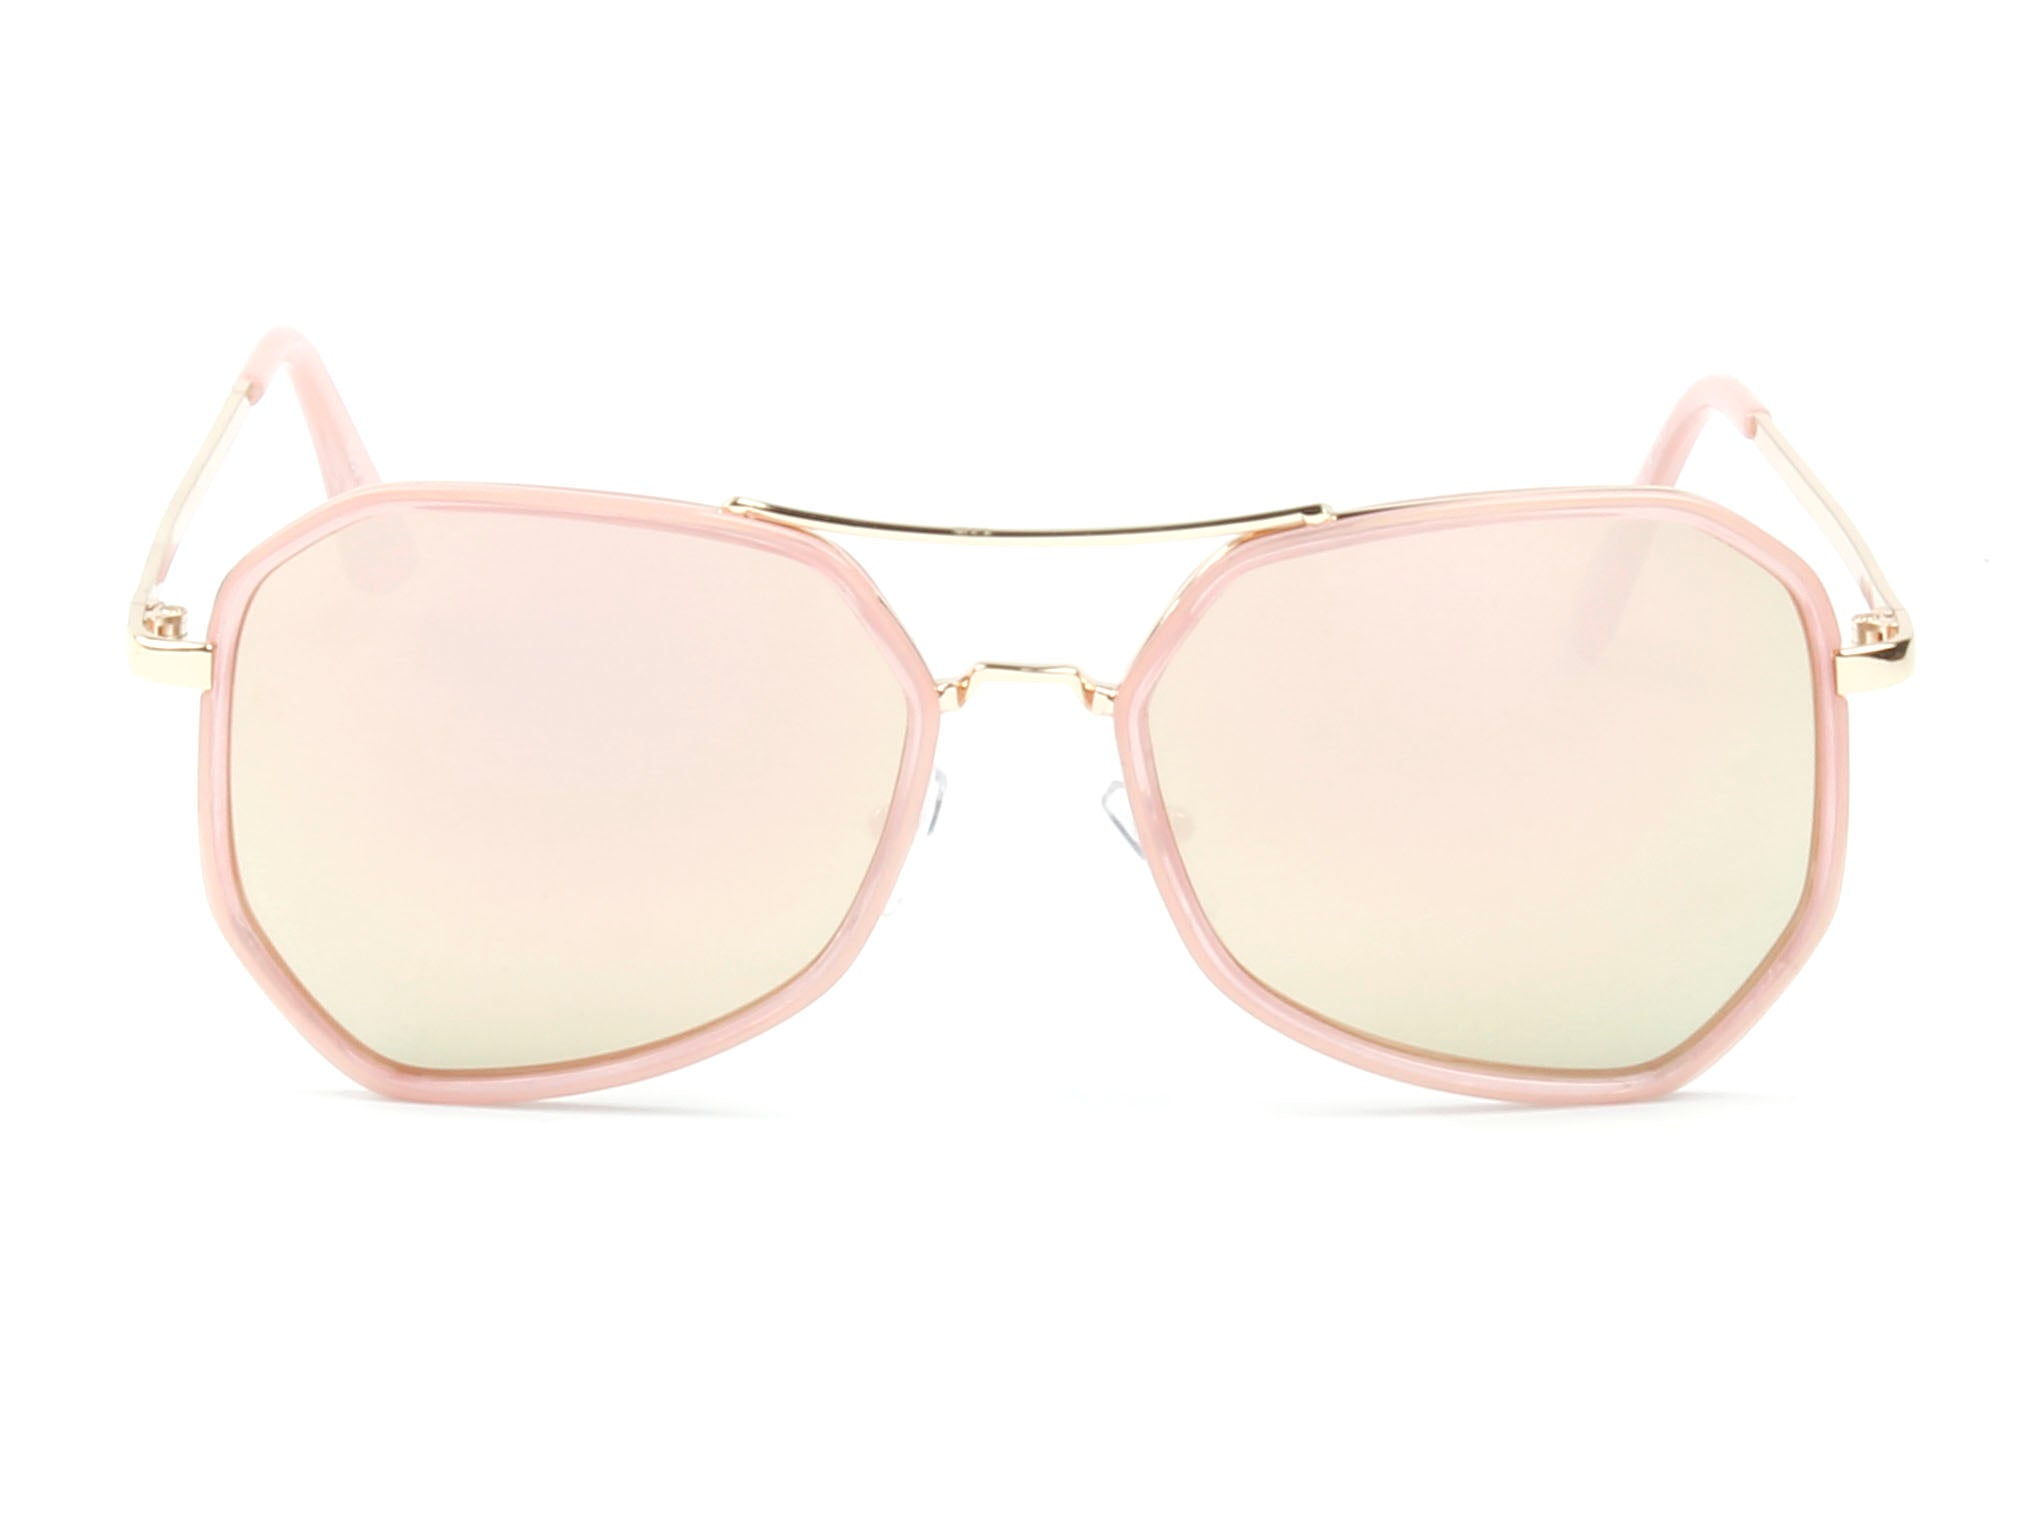 Women Mirrored Oversized Fashion Sunglasses - Pink